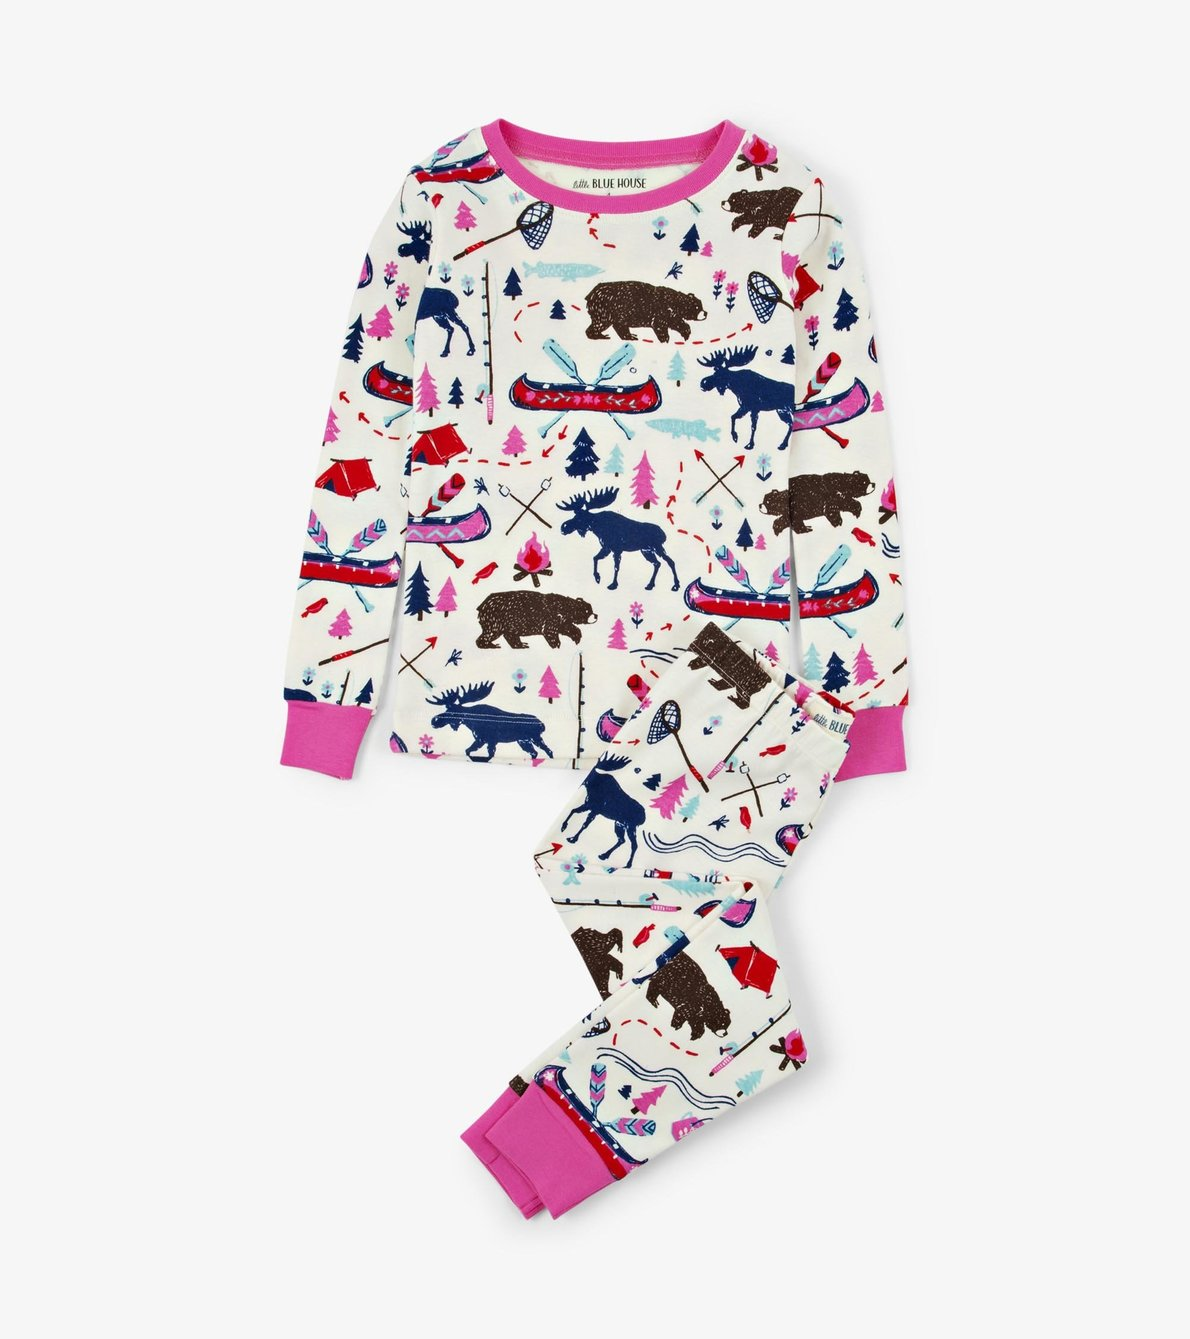 View larger image of Pretty Sketch Country Kids Pajama Set